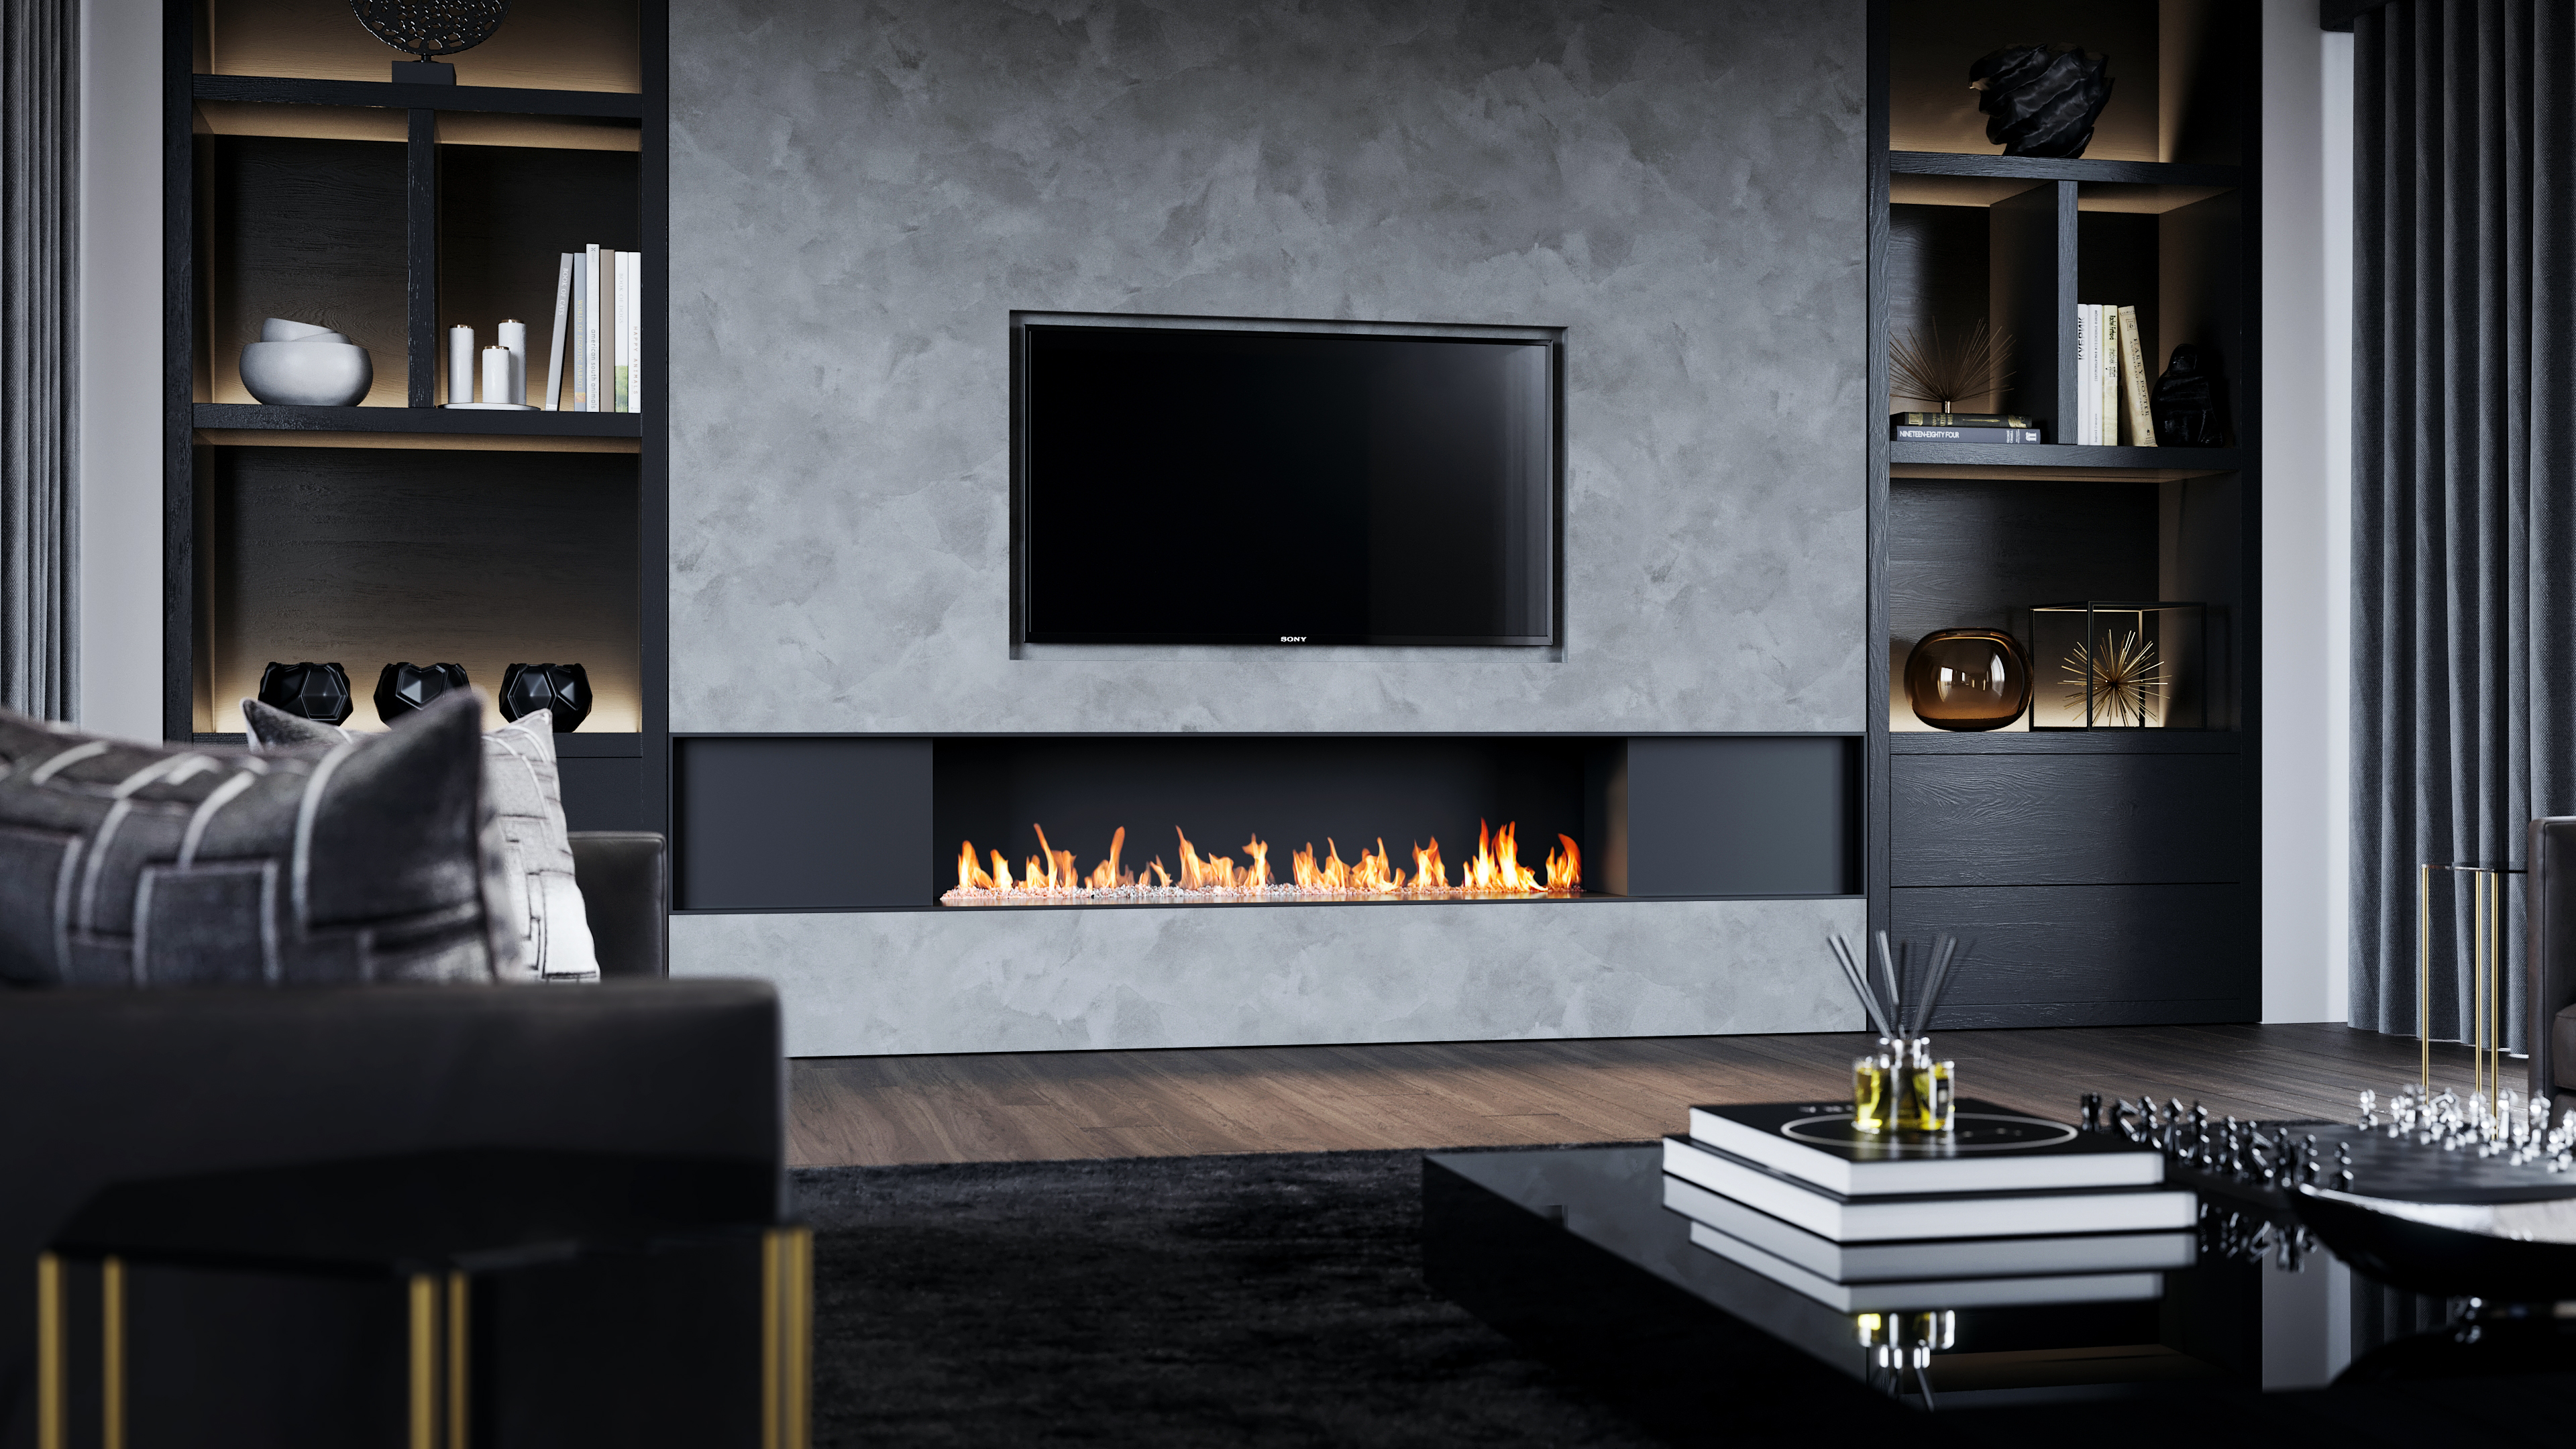 bespoke fireplaces - modern fireplaces - wall fire